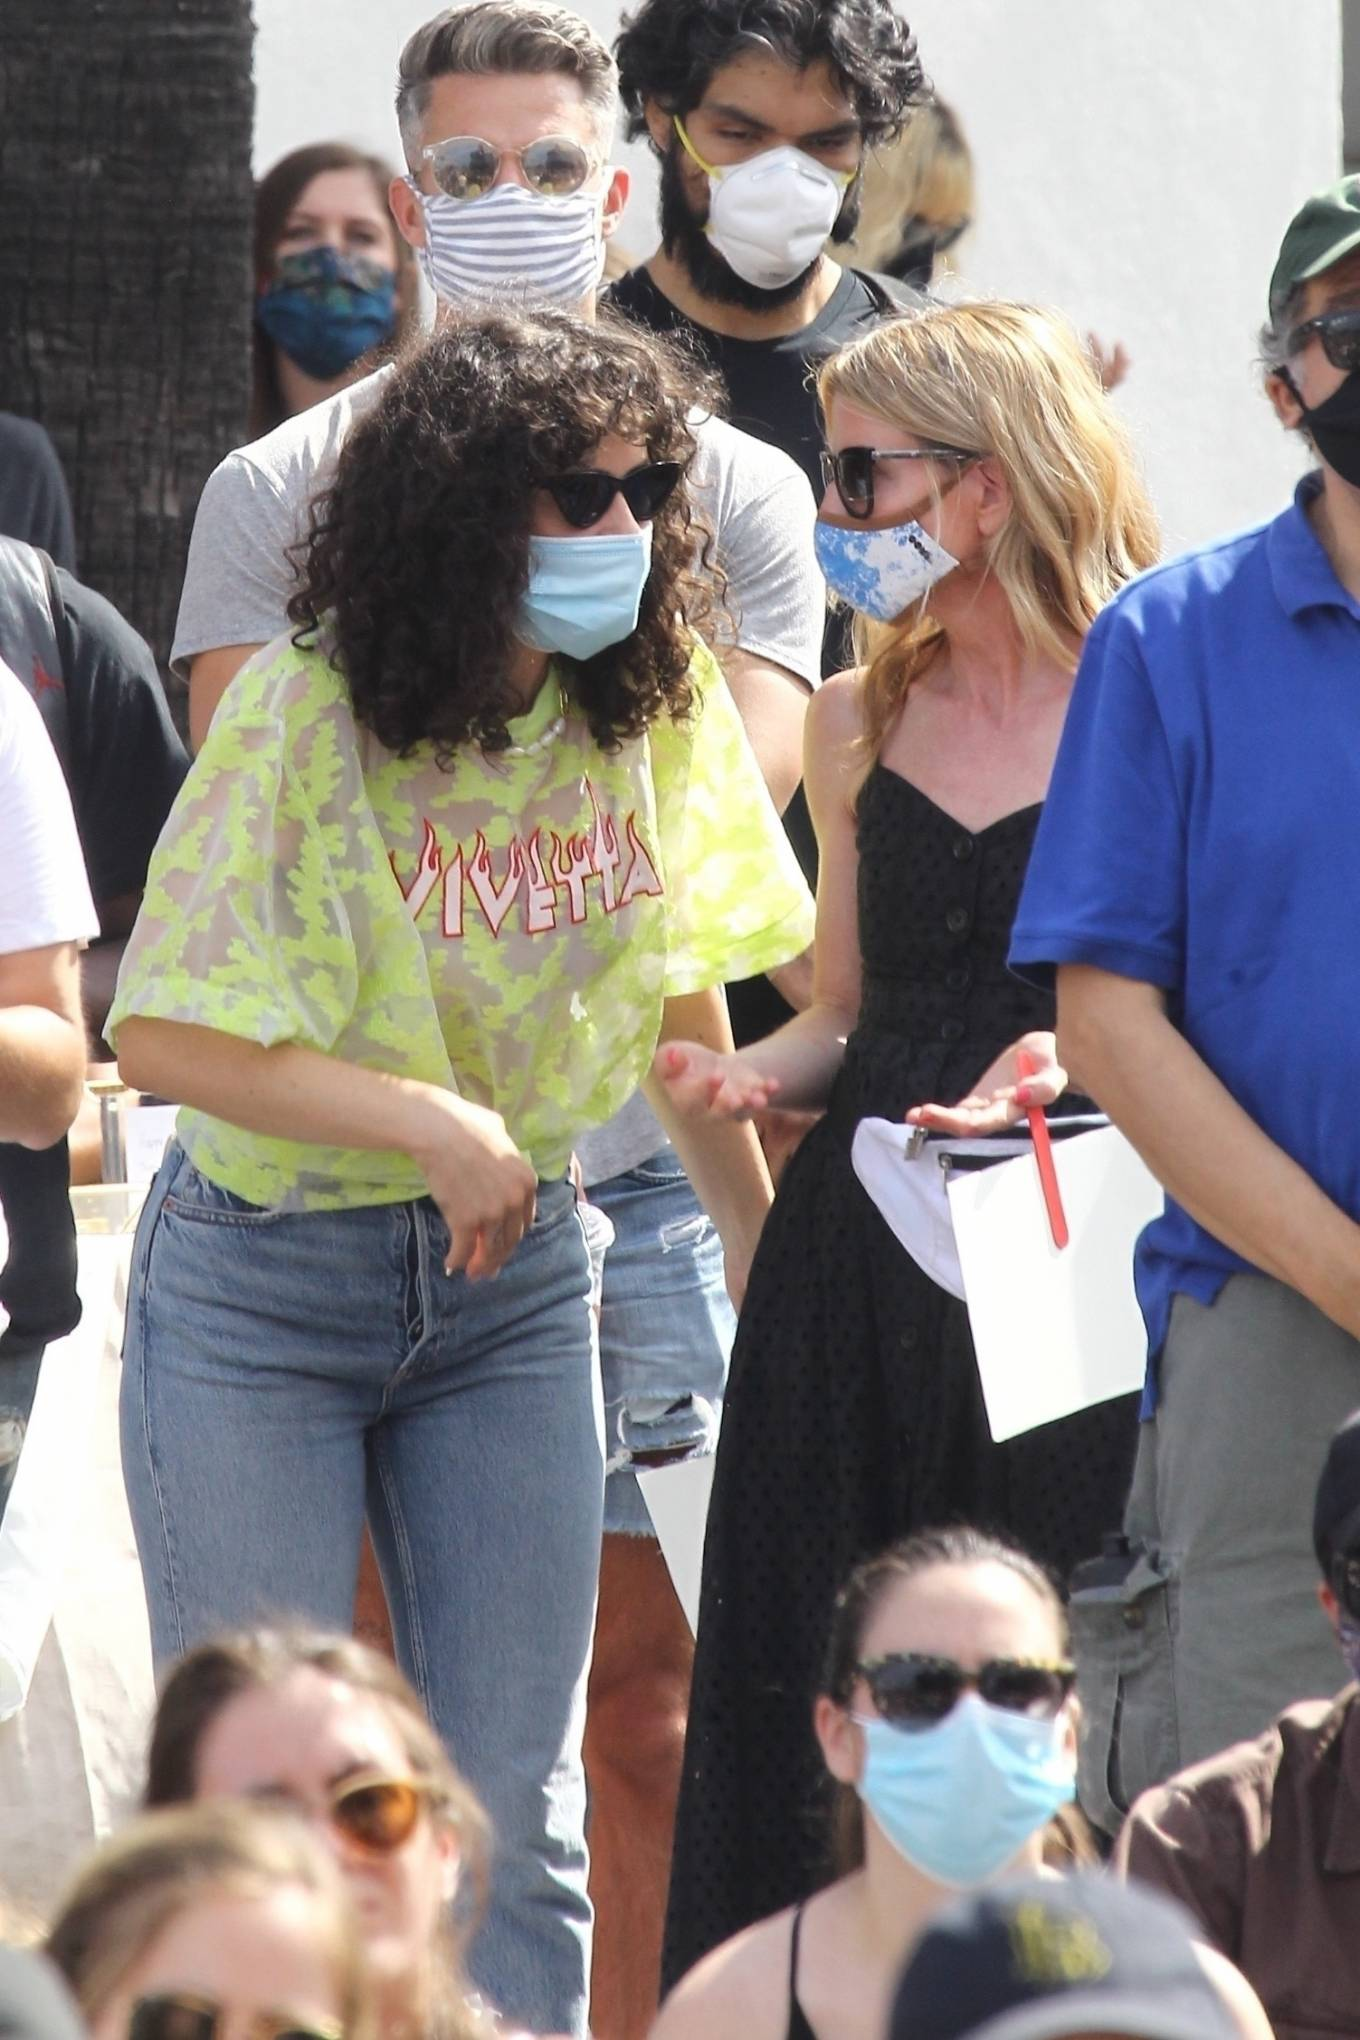 Rumer Willis - Supports Juneteenth - BLM Rally in West Hollywood